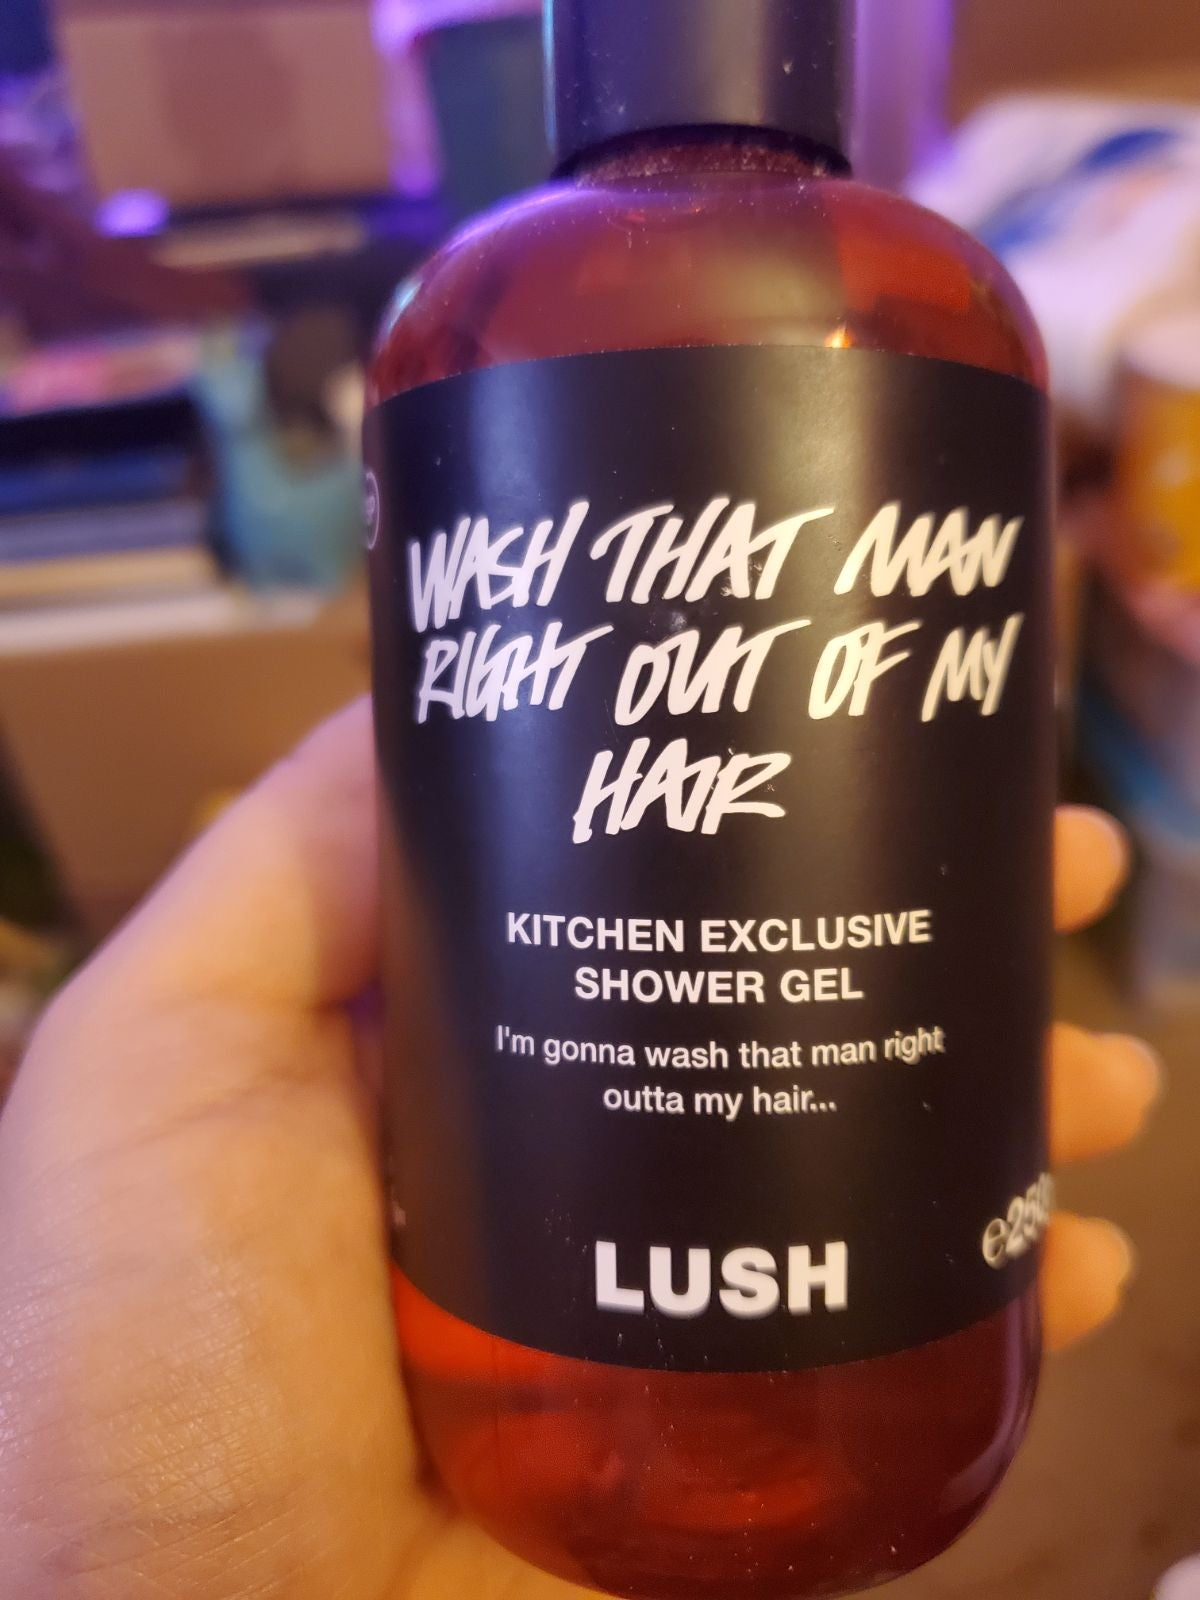 Lush Wash that Man Right Out of My Hair